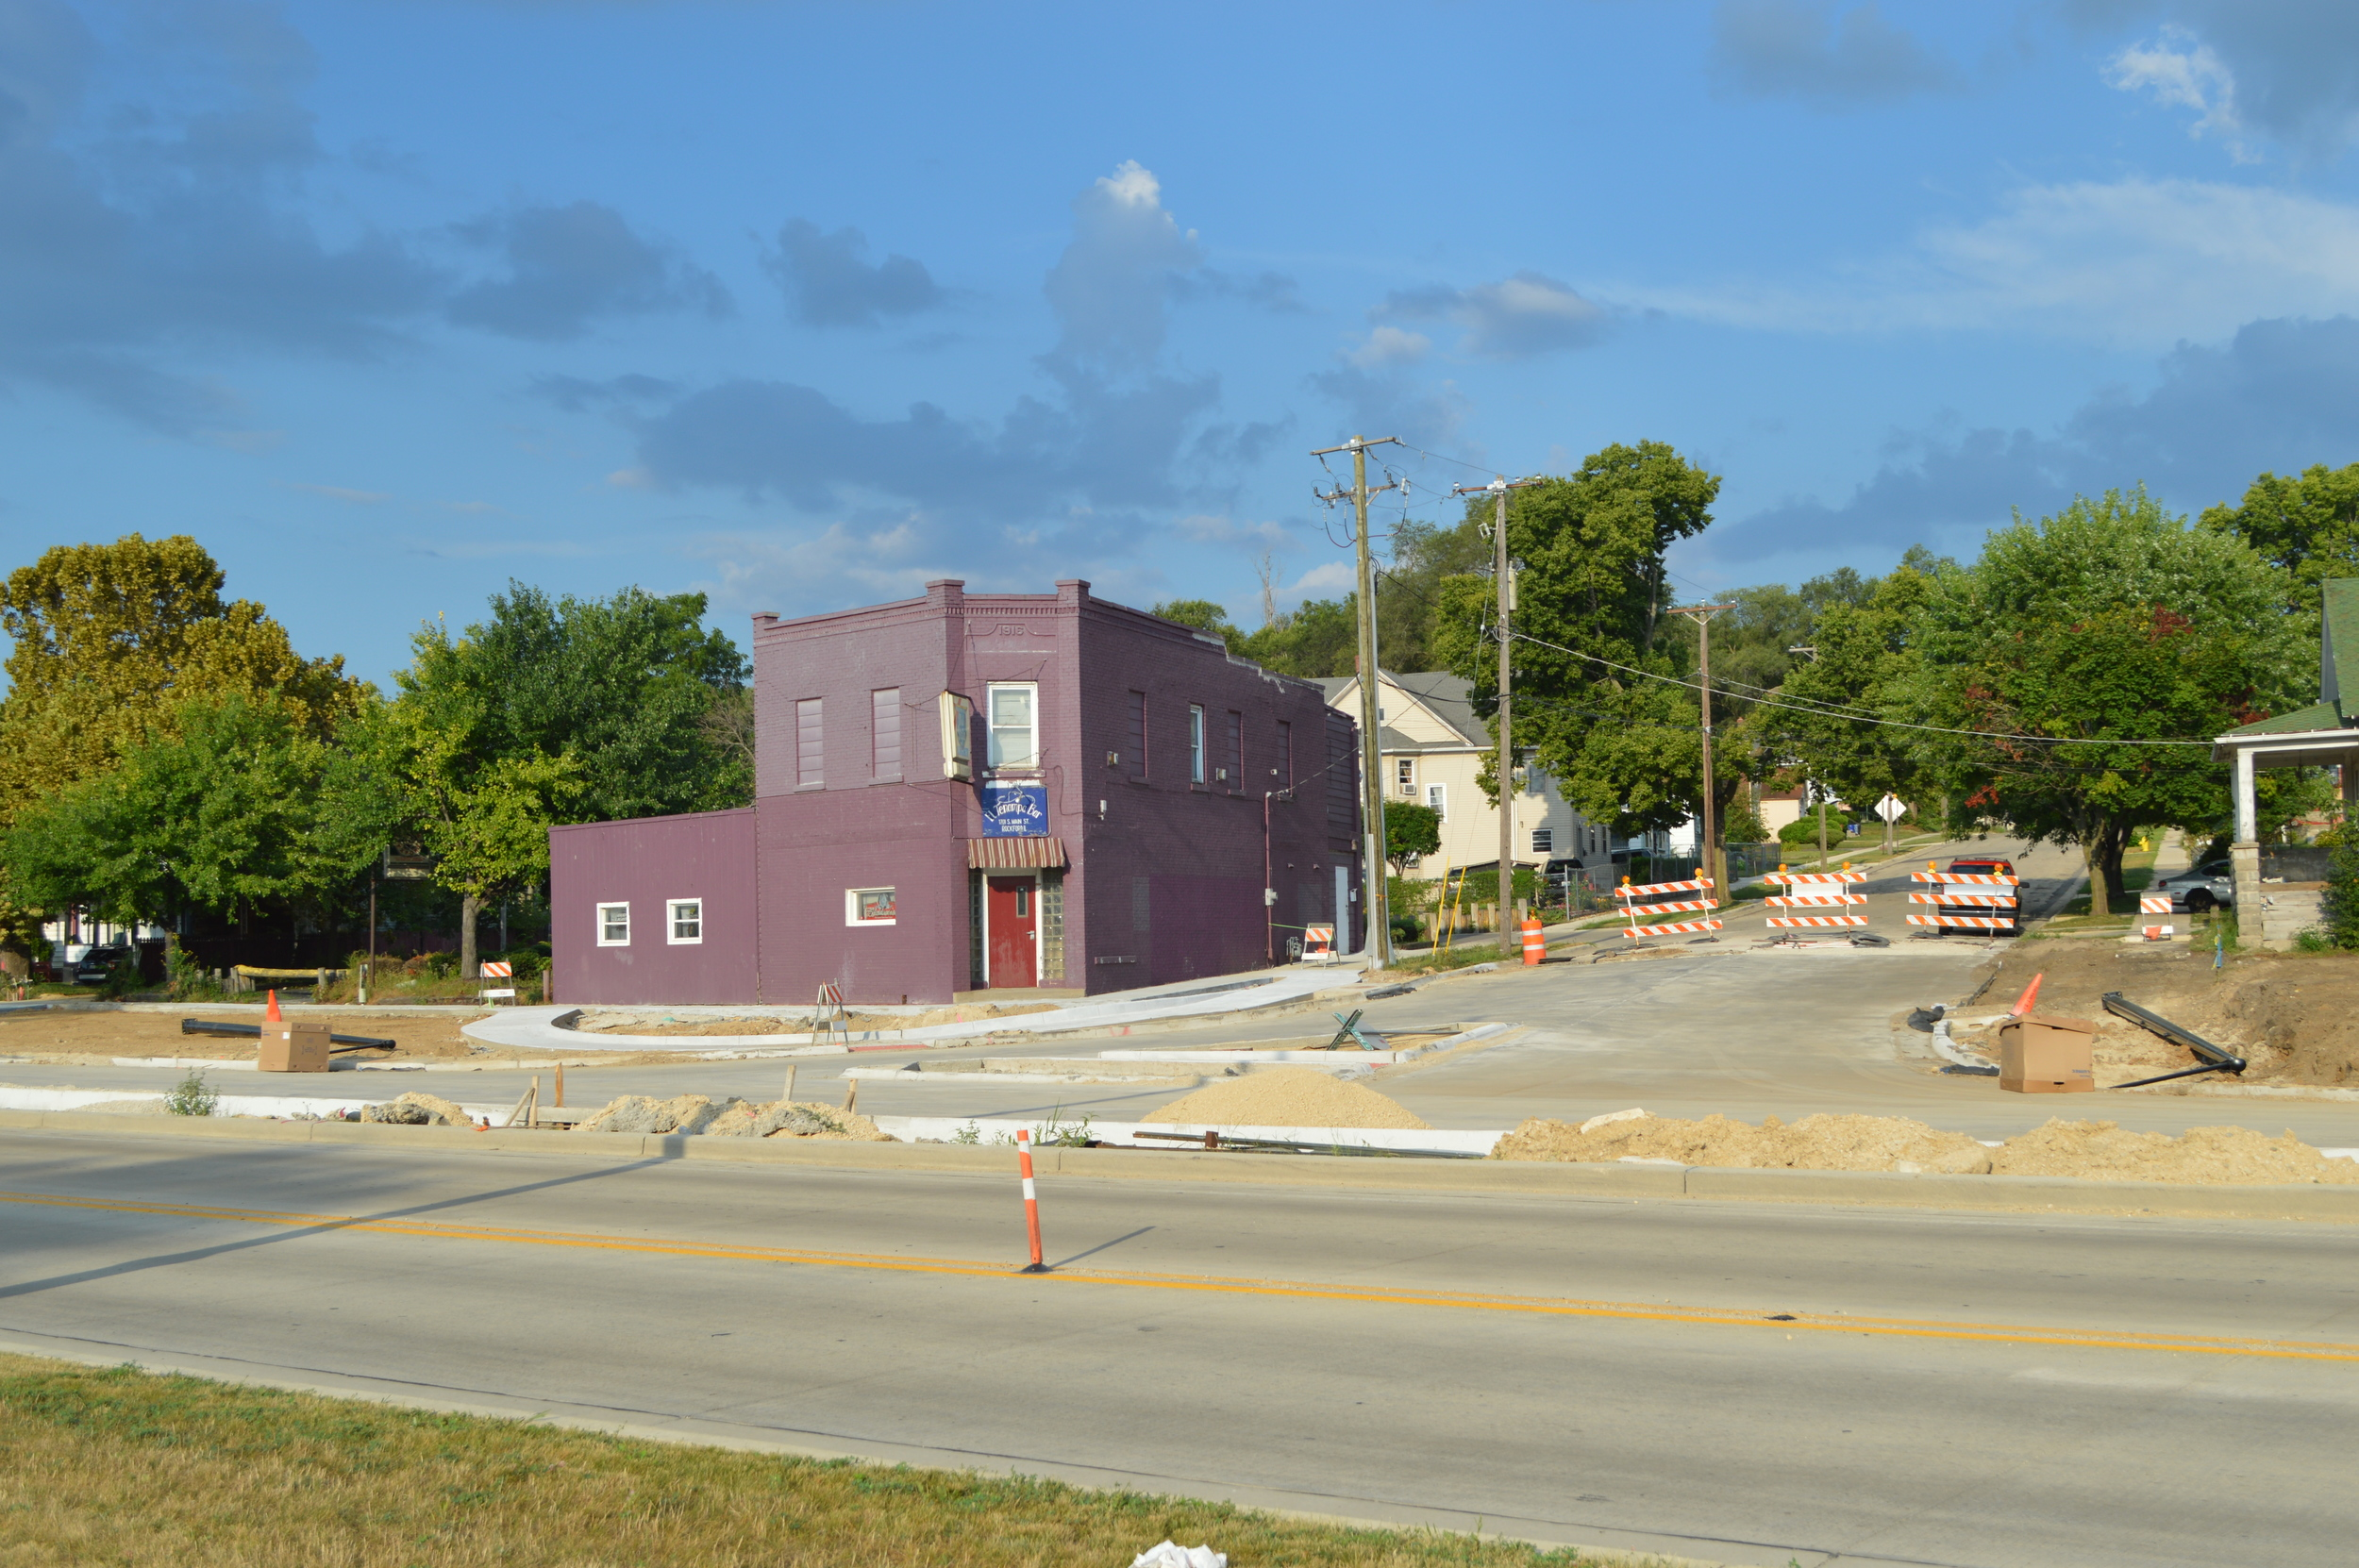 South Main and Island, looking west. El Tanampa bar housed in purple building, a long-standing business in southwest Rockford, now accessed only by right-in, right-out traffic.